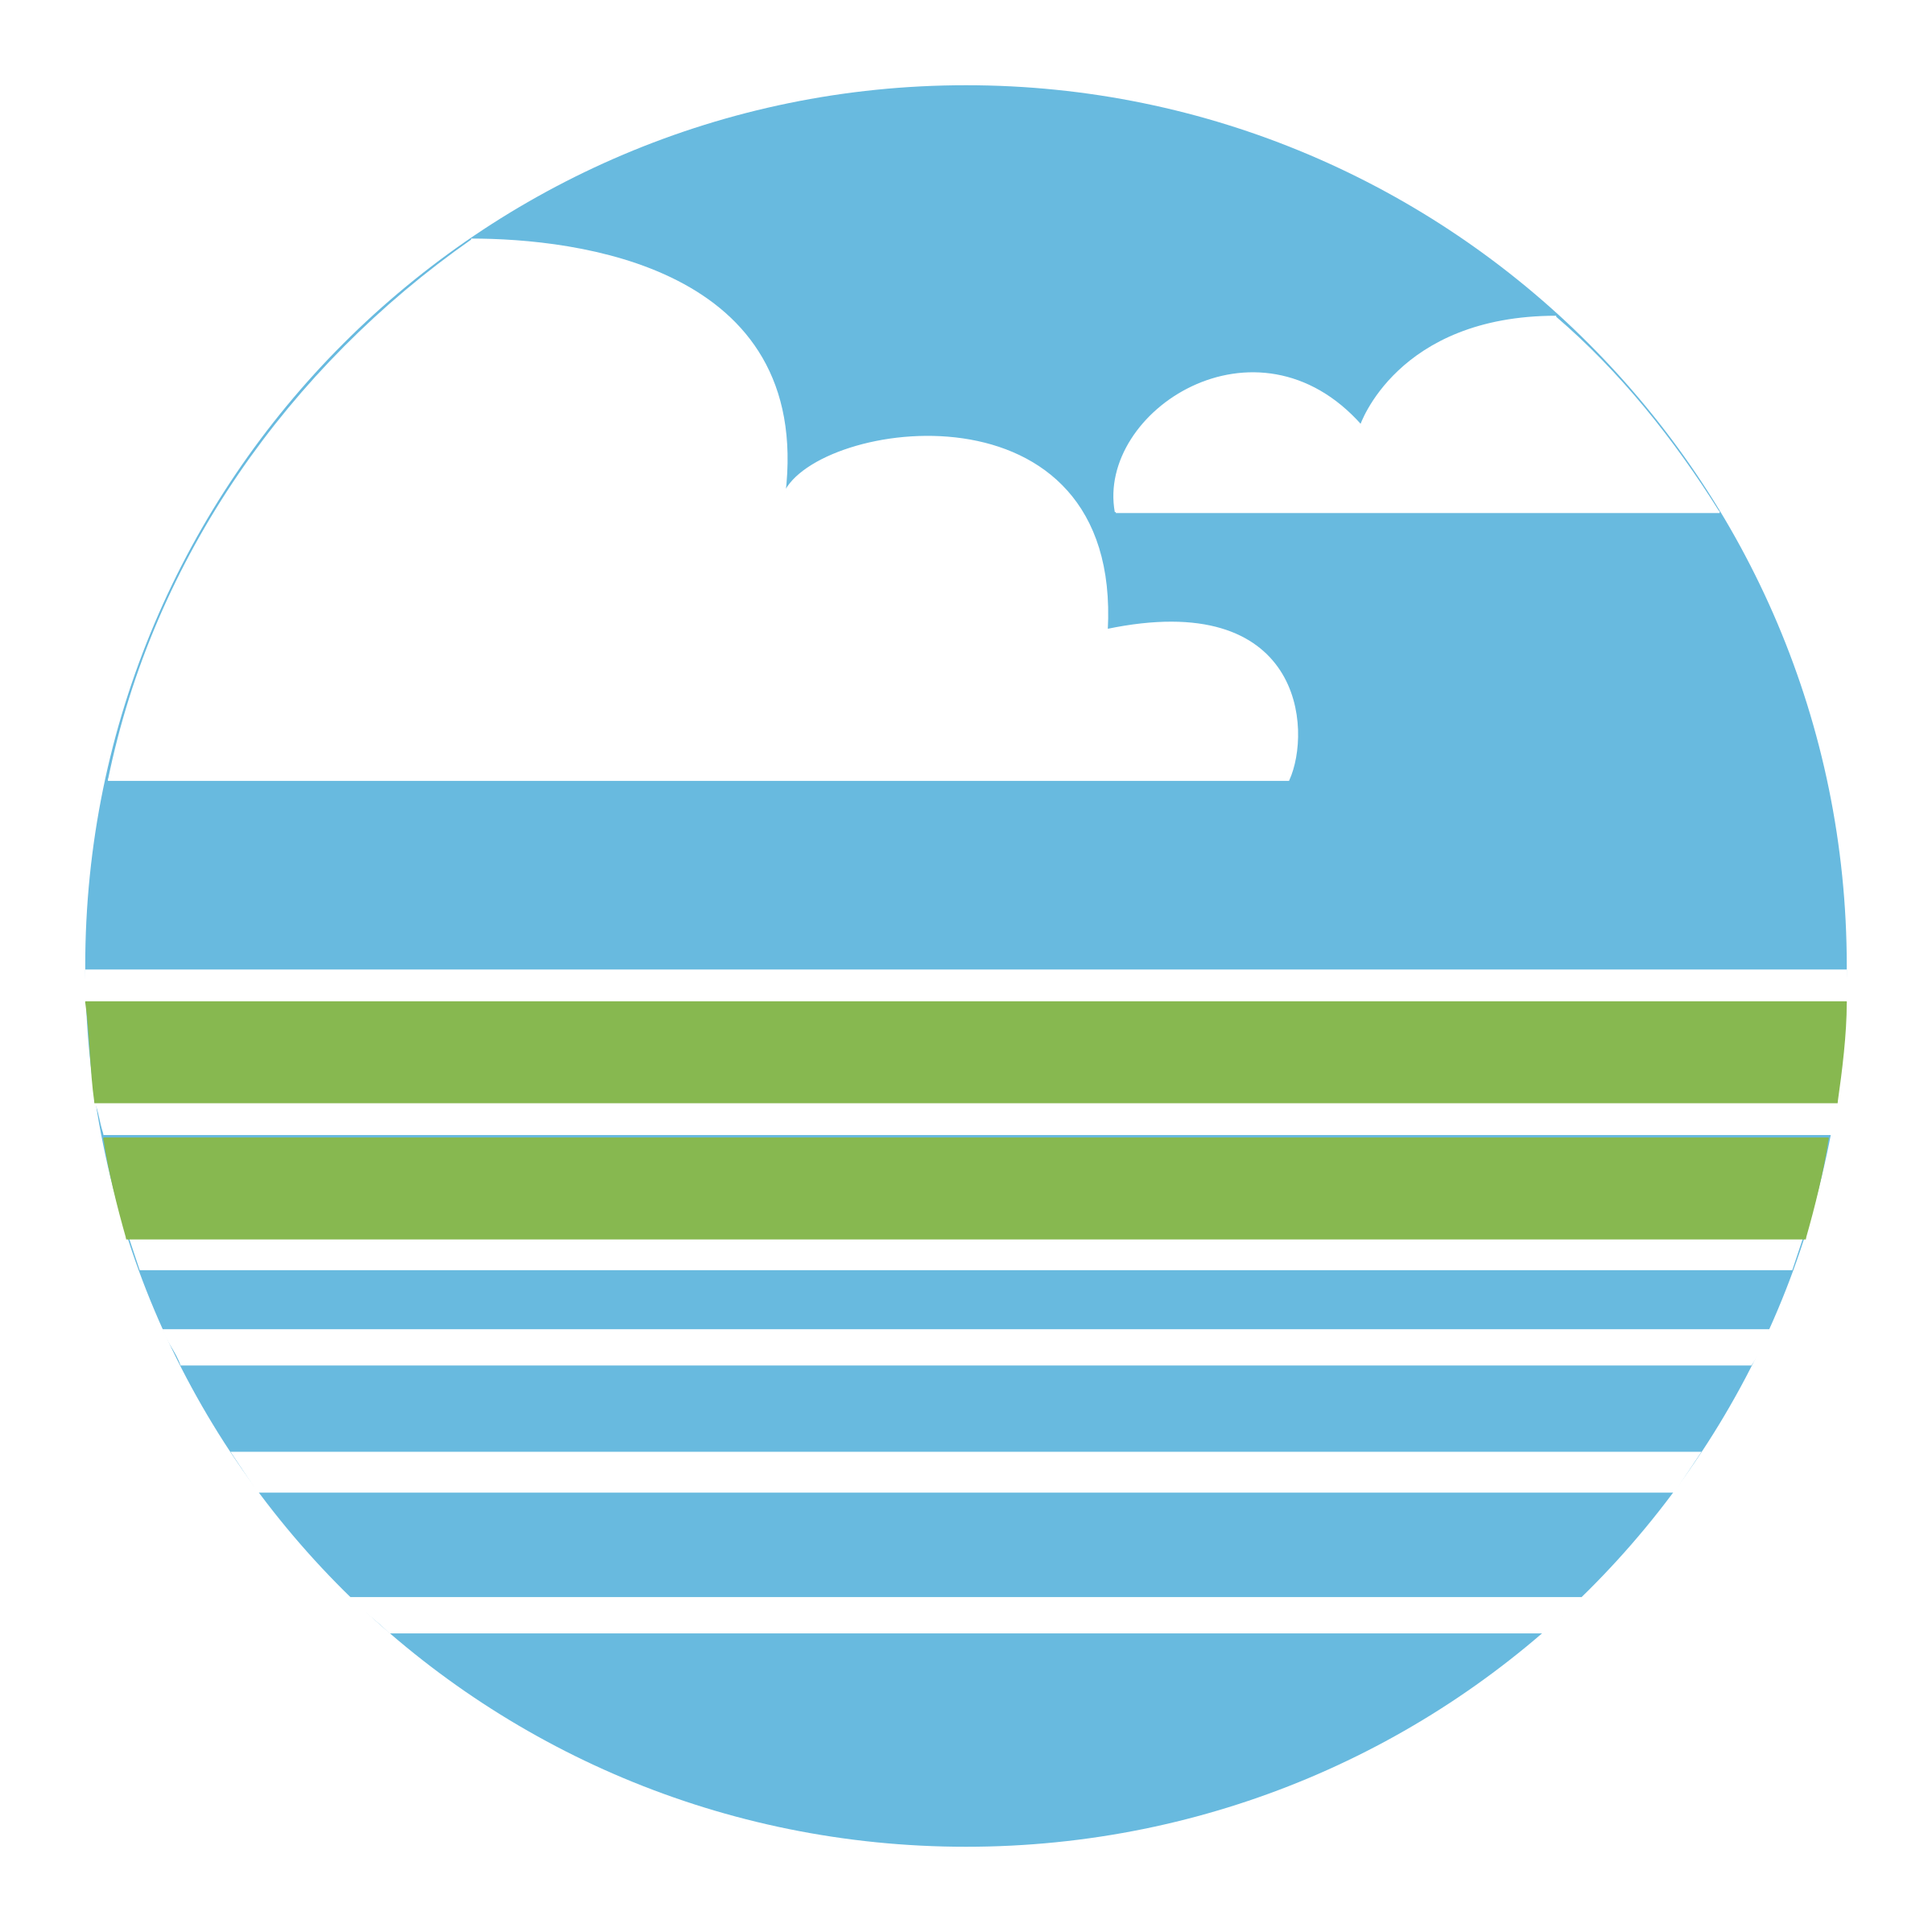 Ministry of the png. Environment clipart environment logo